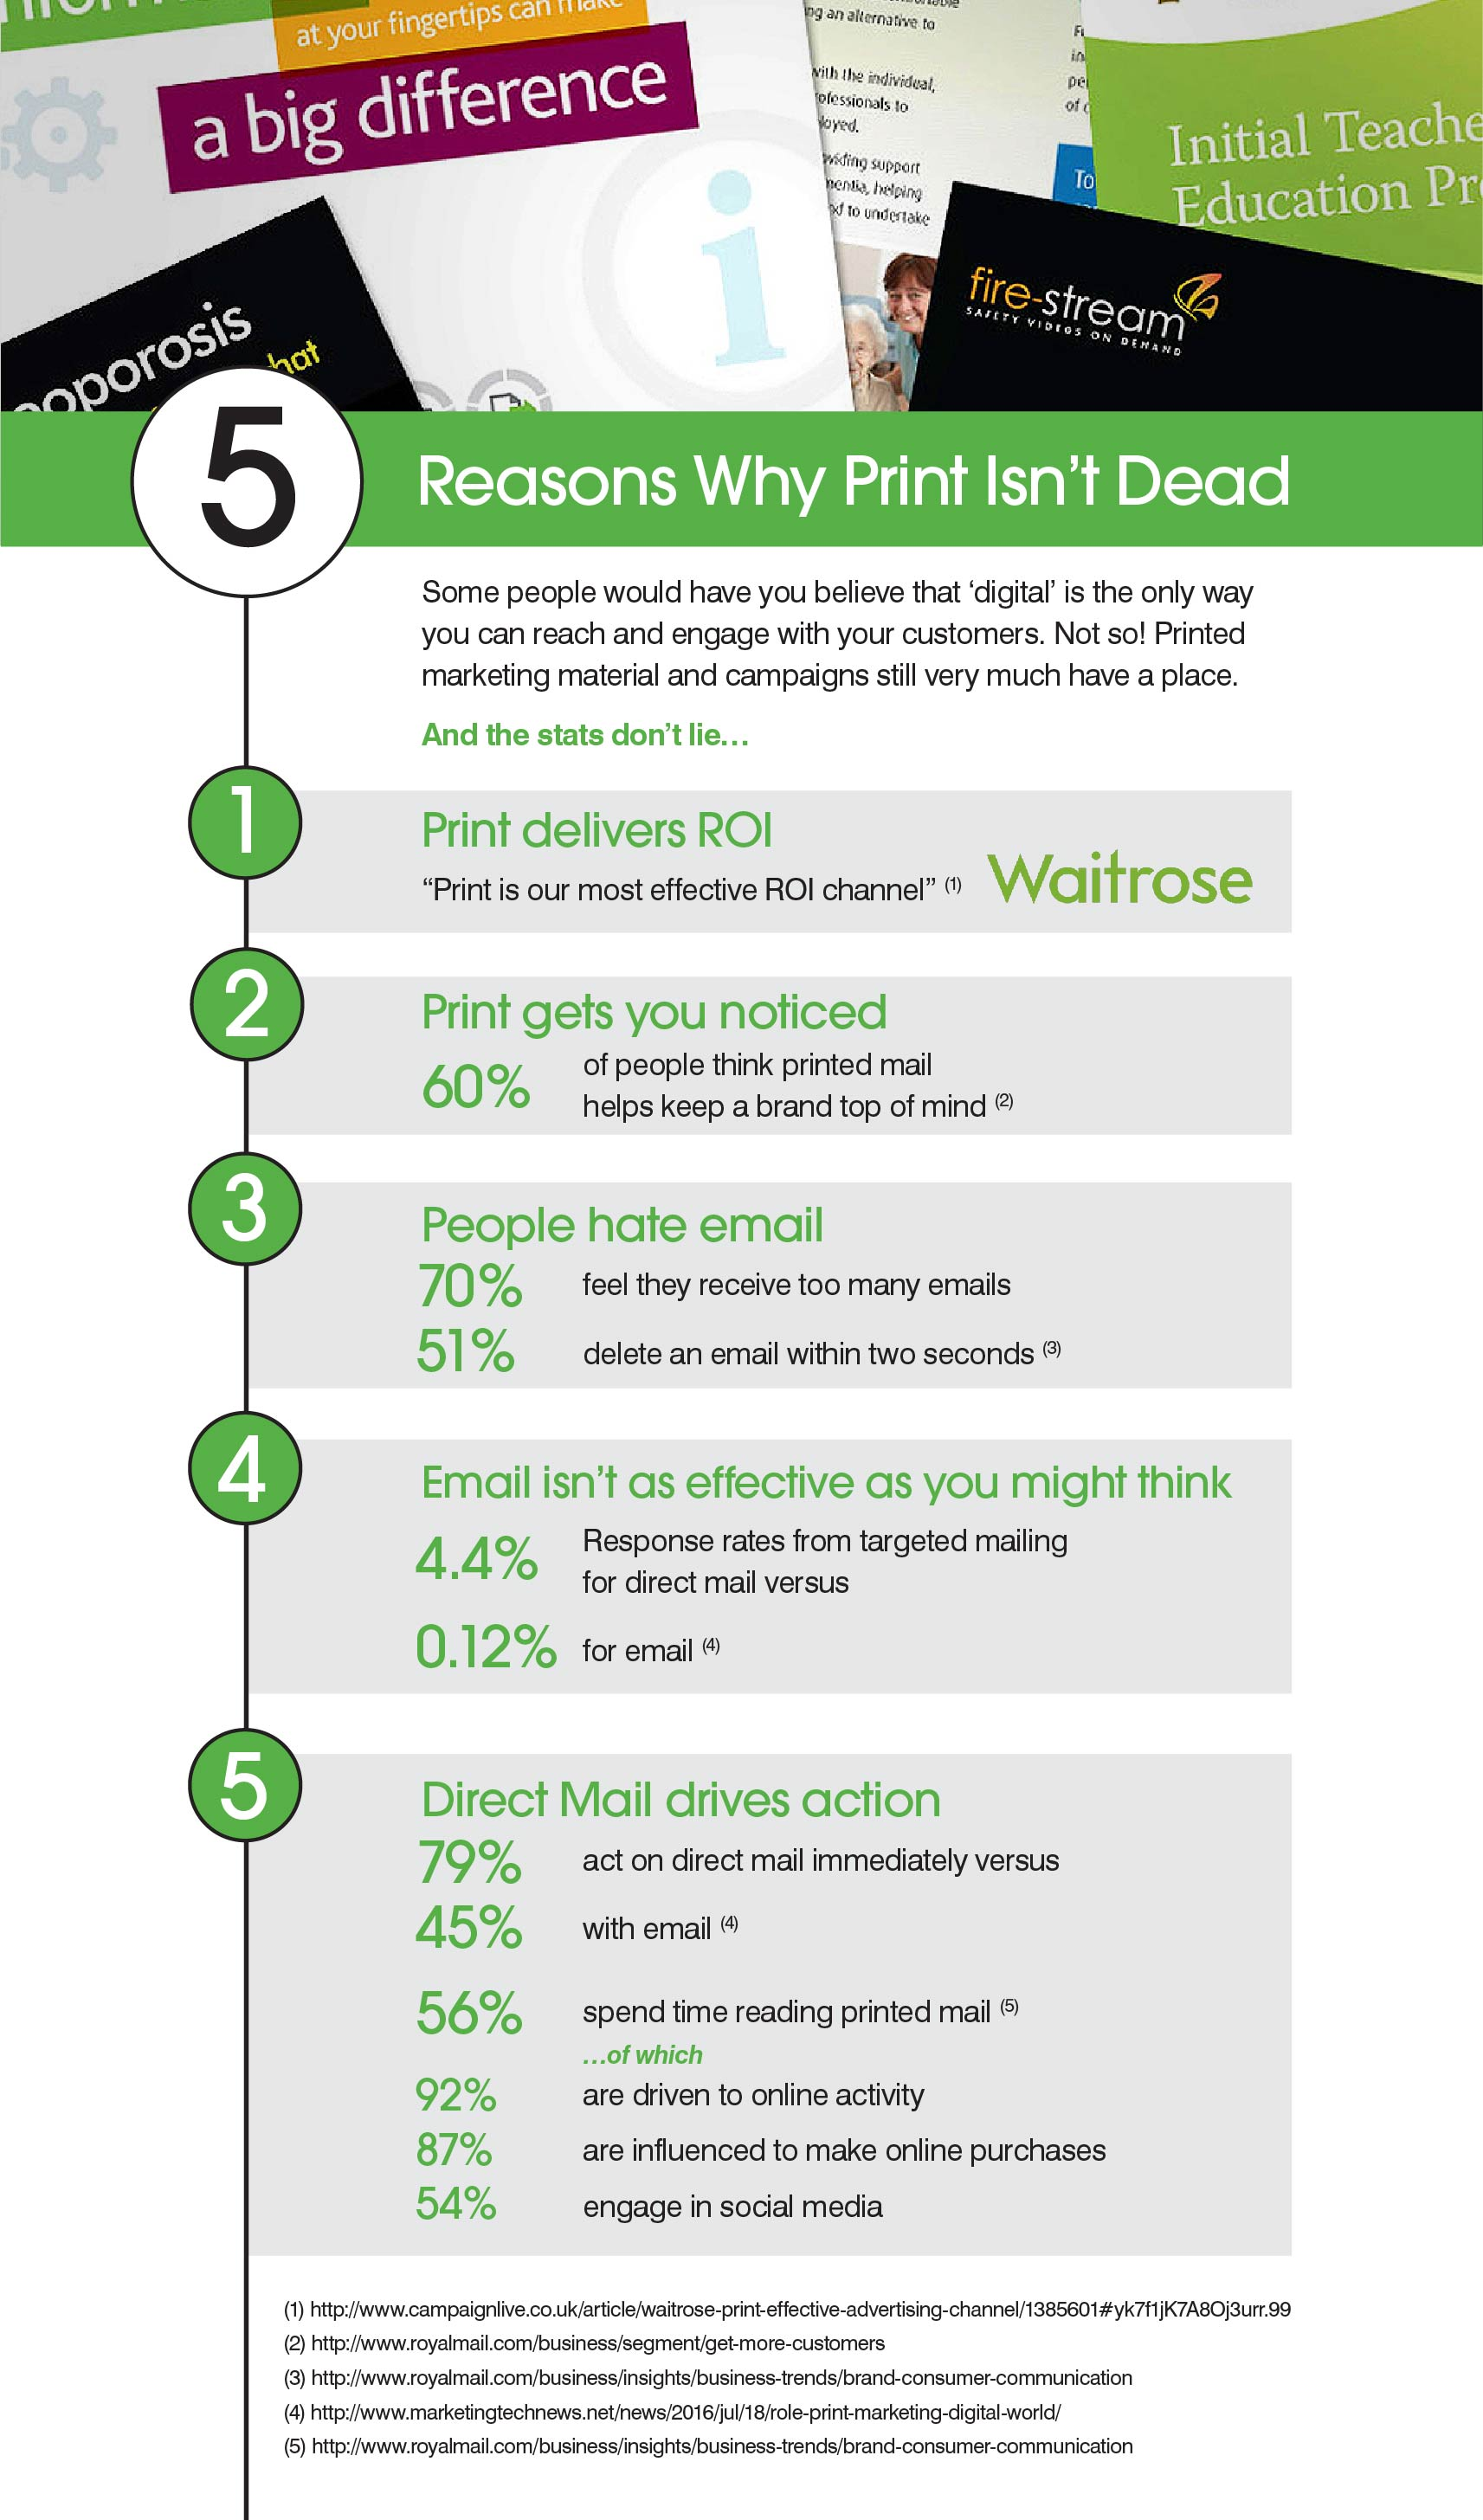 5-reasons-why-print-isnt-dead-infographic